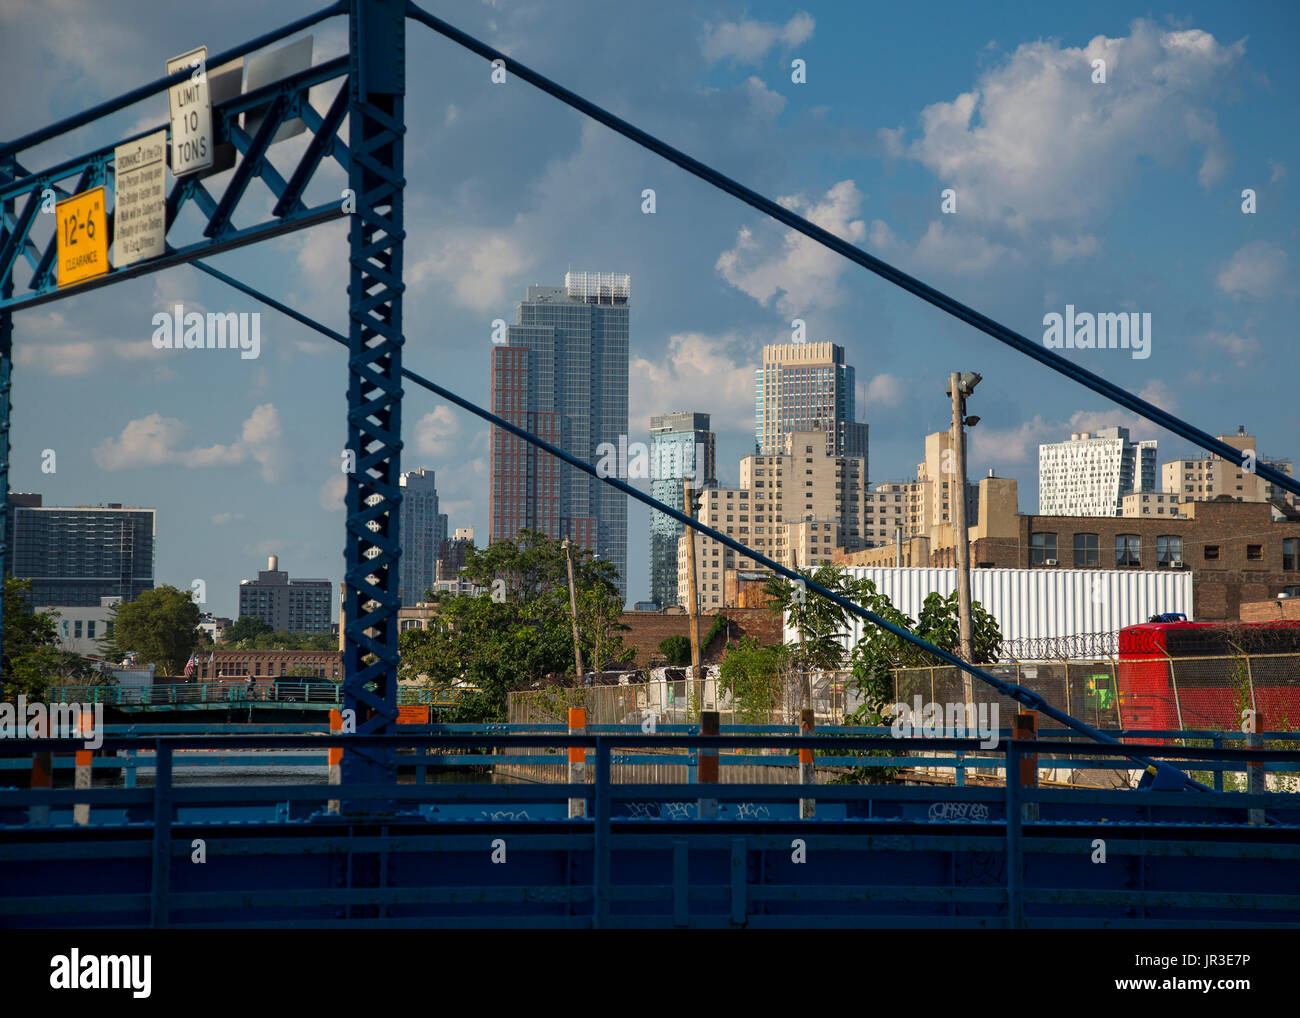 A view of downtown Brooklyn from a bridge on the Gowanus Canal - Stock Image